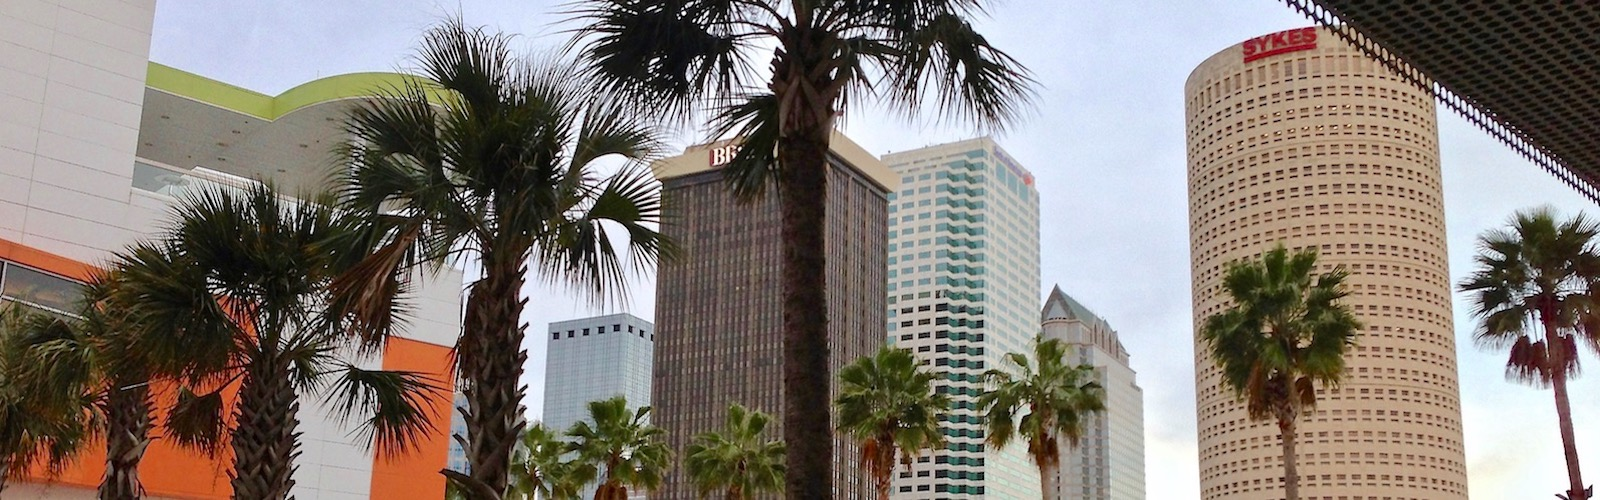 Downtown Tampa as seen from the The Tampa Riverwalk at Curtis Hixon Park. <span class=&apos;image-credits&apos;>Photo by Diane Egner</span>